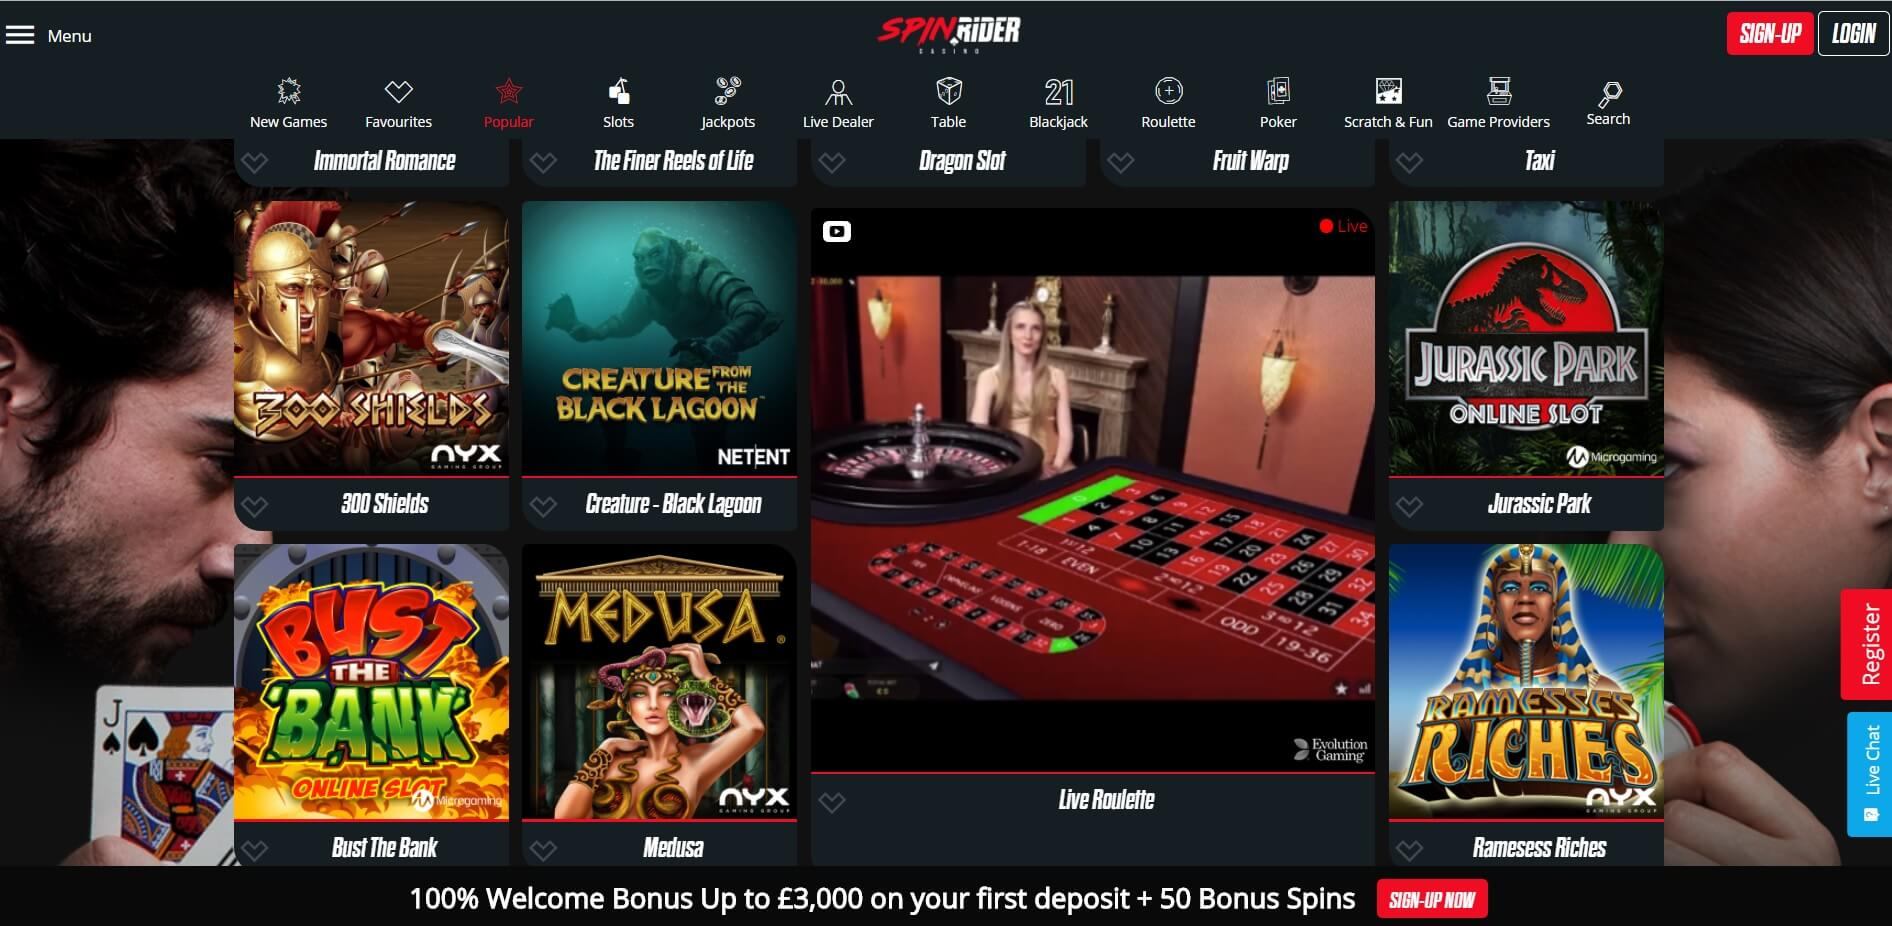 spinrider casino games